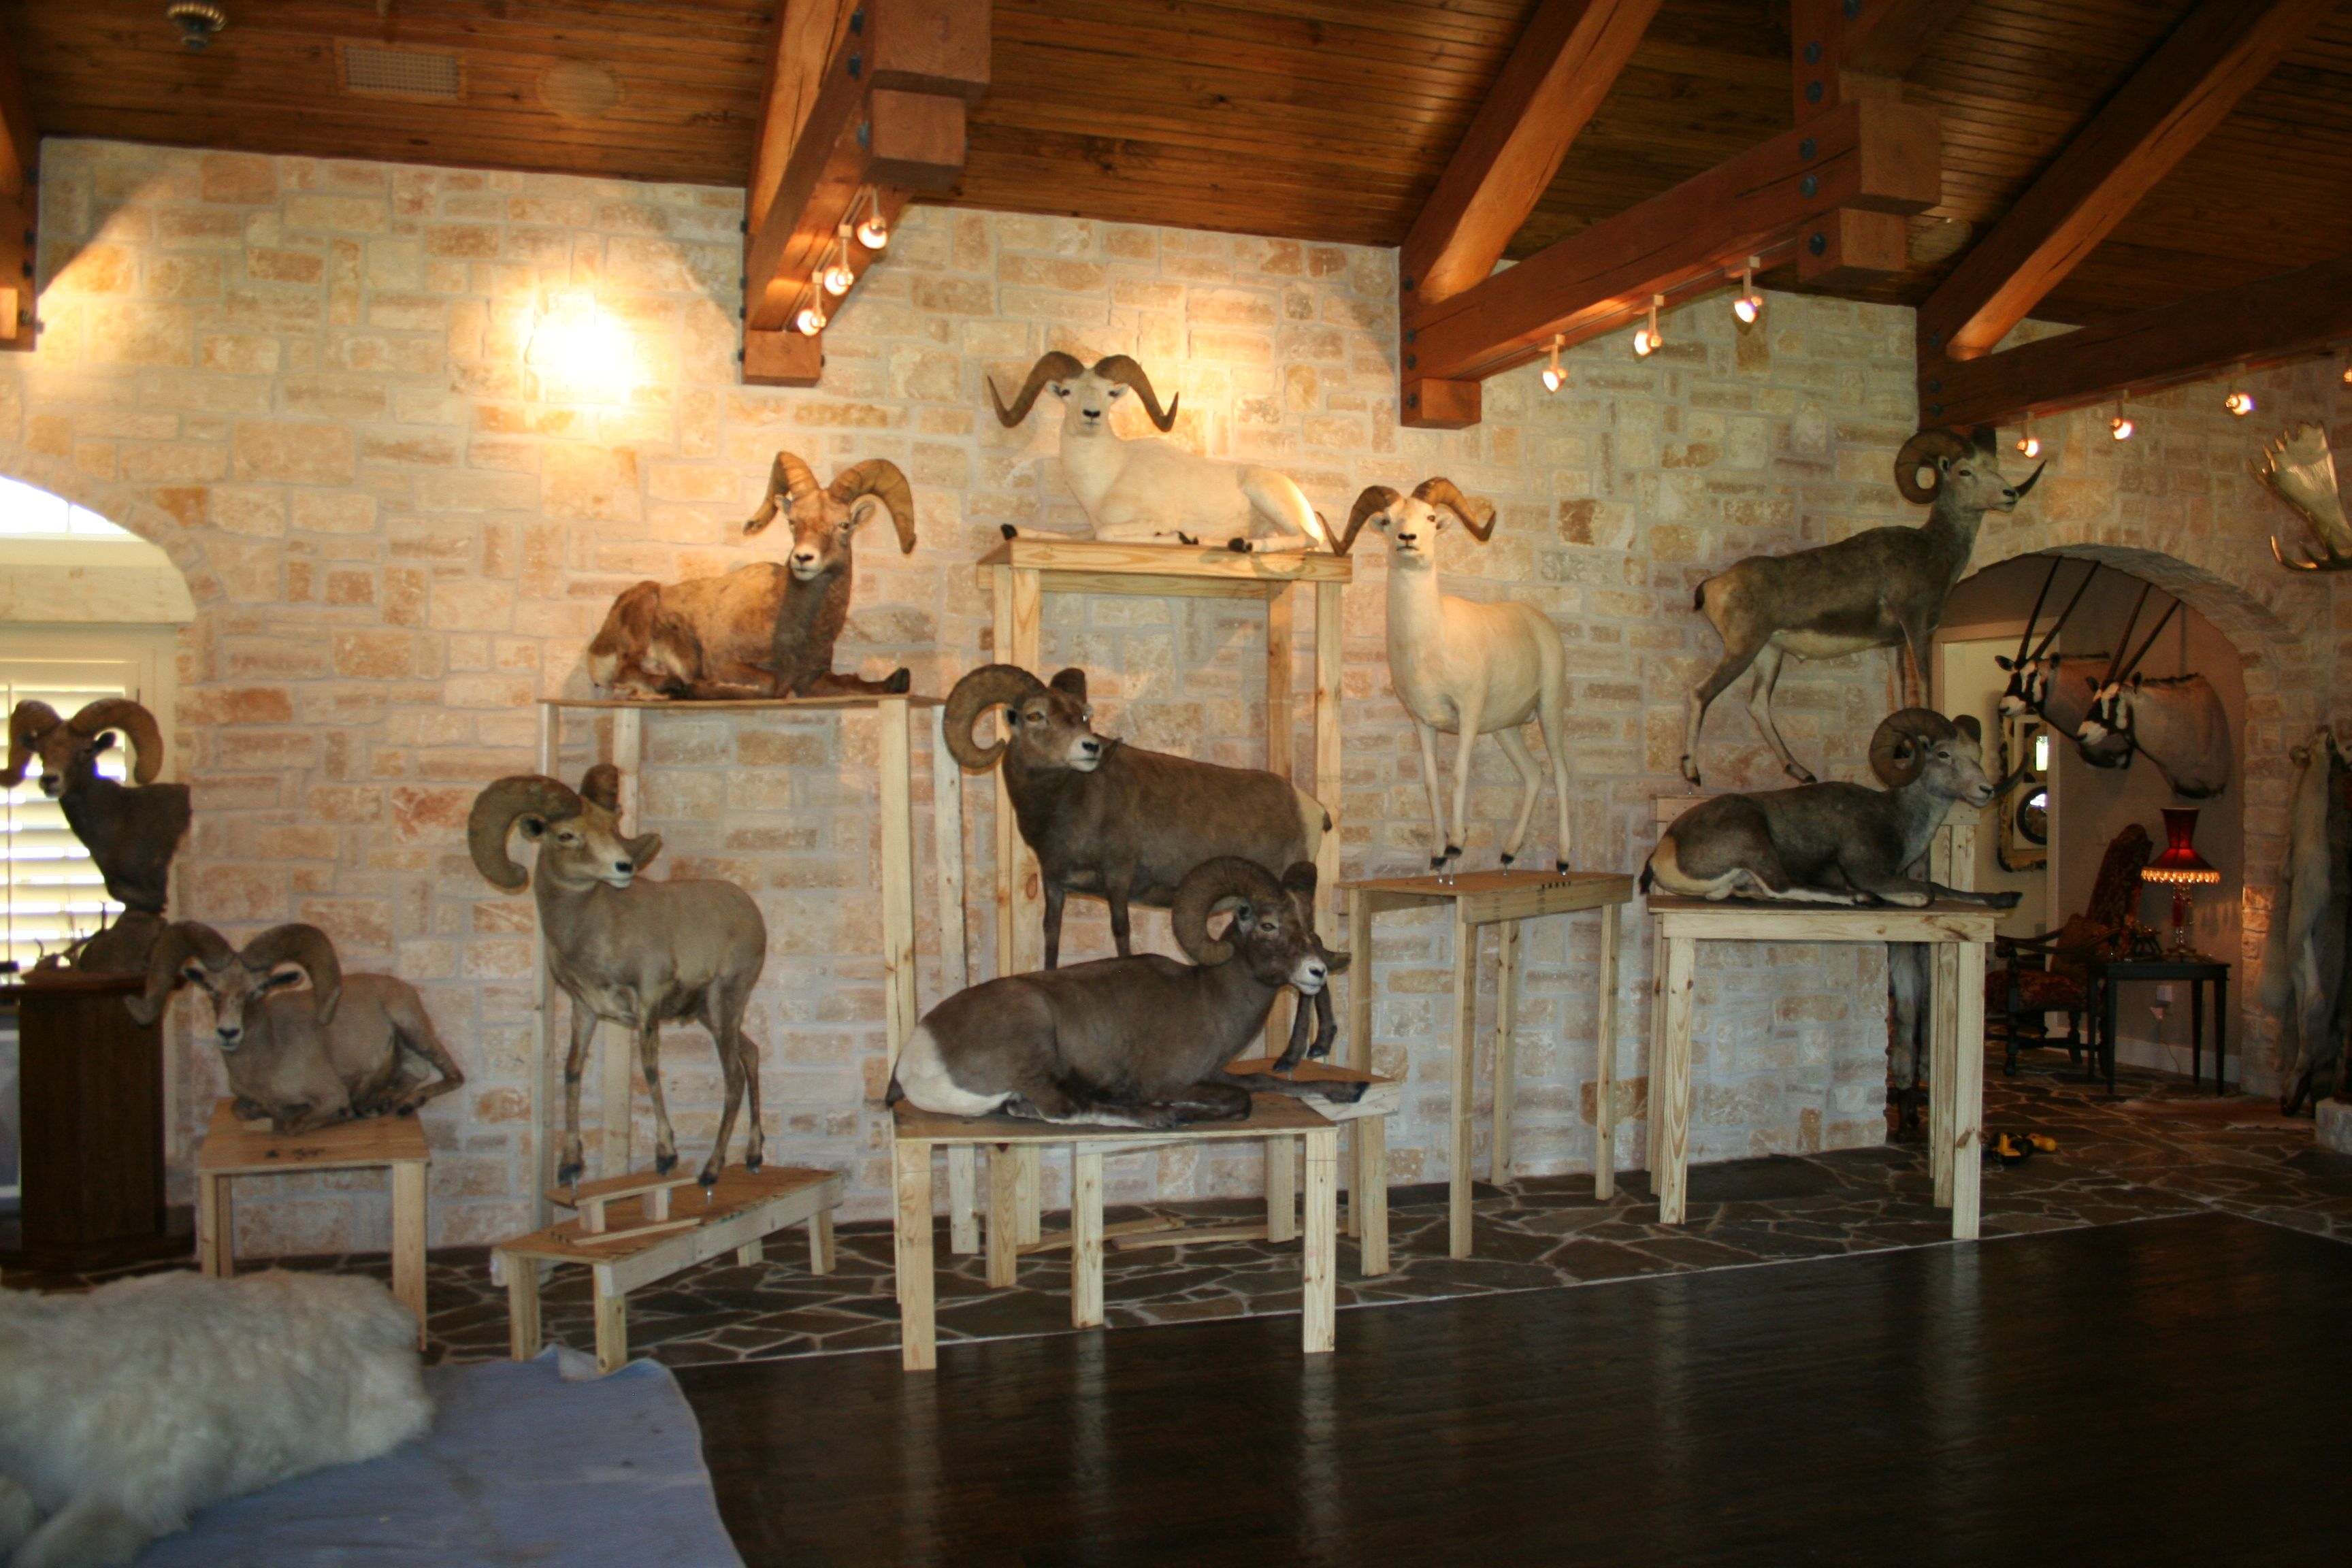 Texoma's QUALITY Home Builder does Trophy Rooms, too